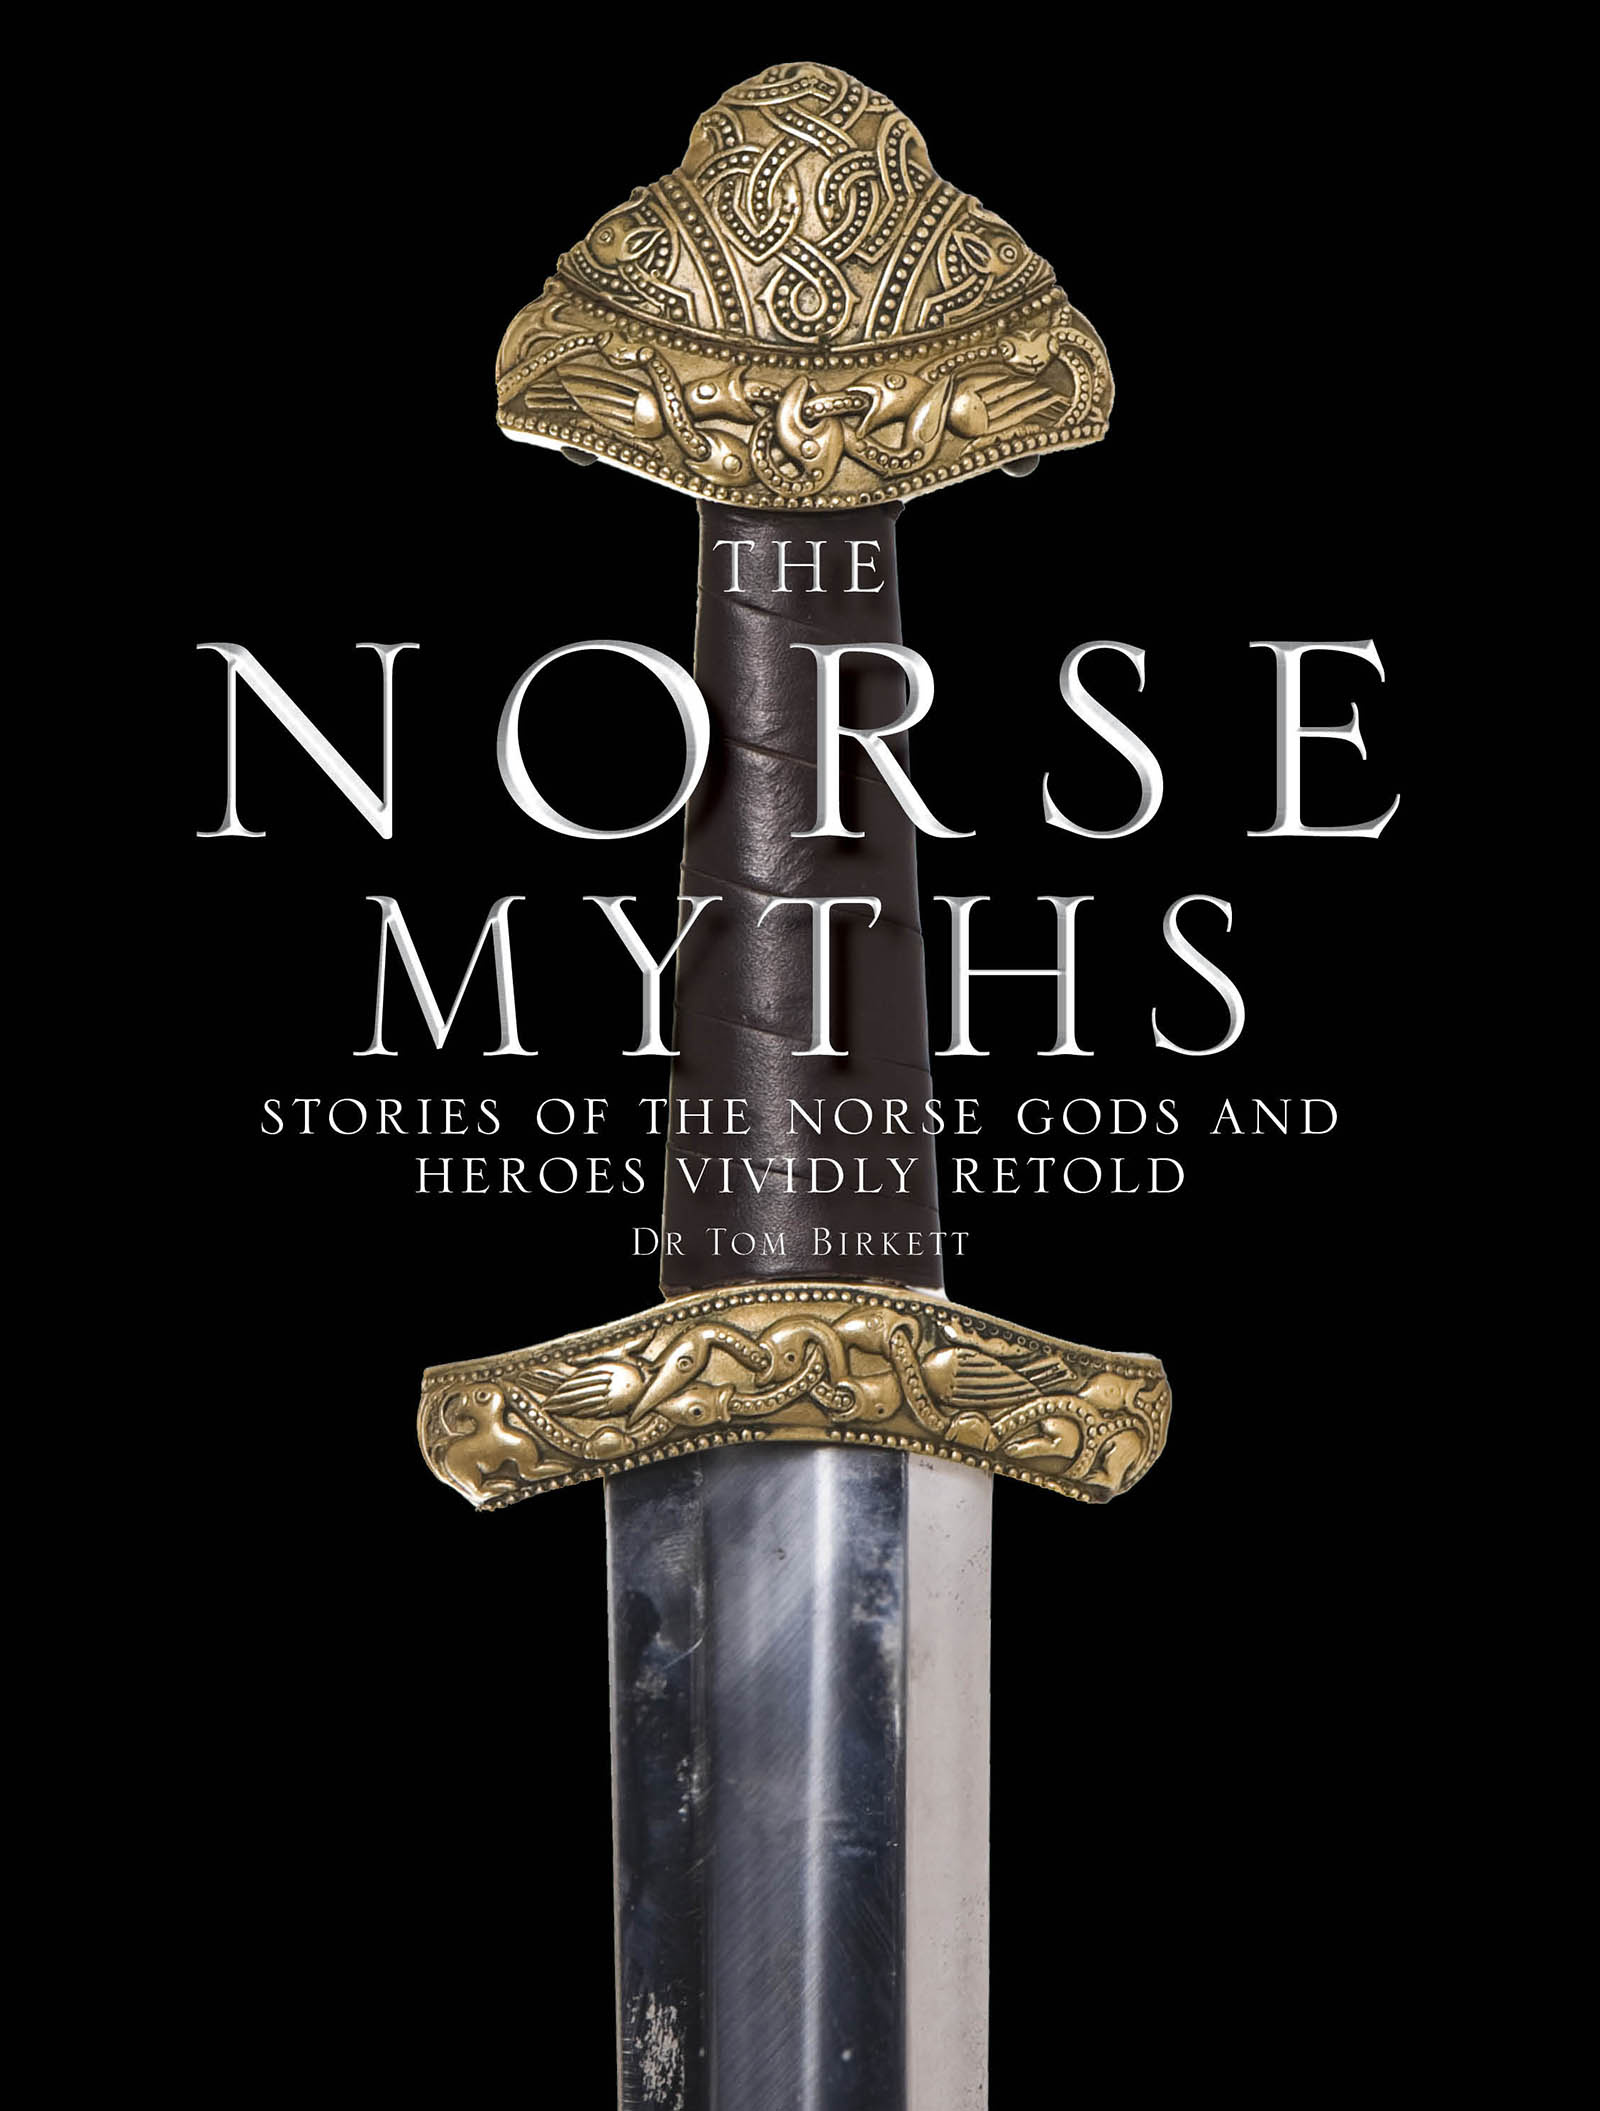 The Norse MythsStories of The Norse Gods and Heroes Vividly Re... by Dr Tom Birkett, ISBN: 9781786488824